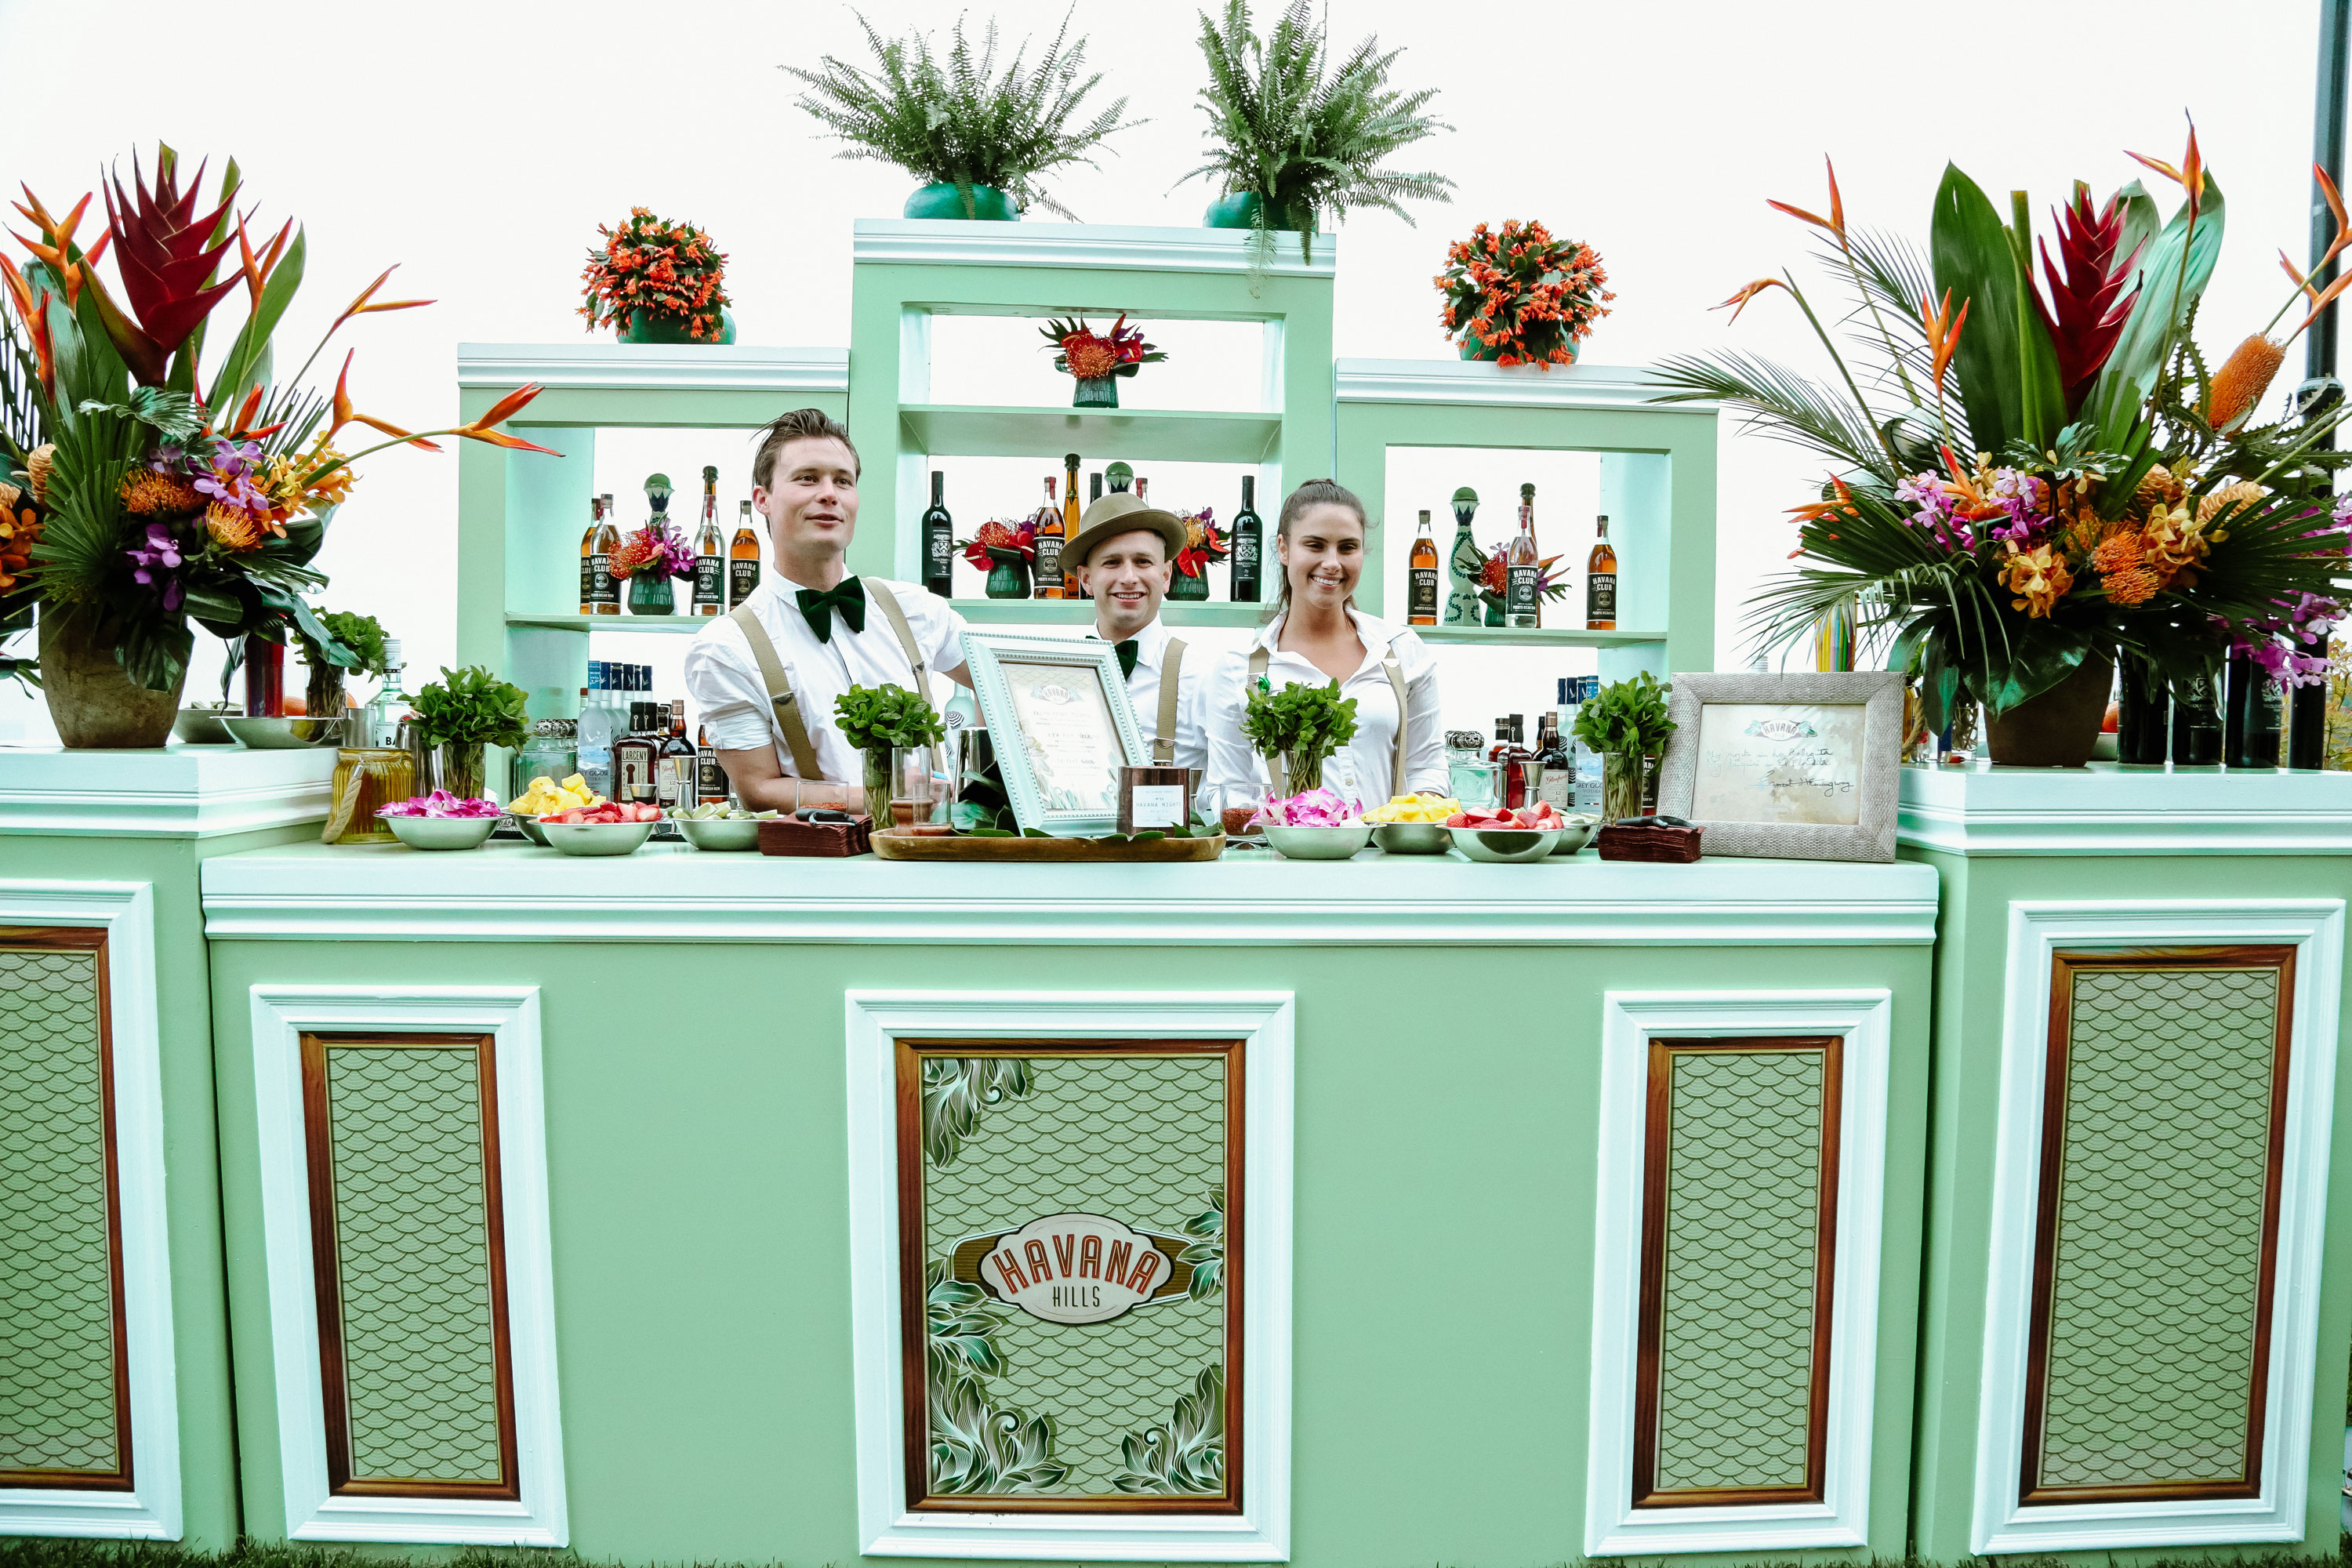 Bartenders at the bar at Havana Hills Themed Party